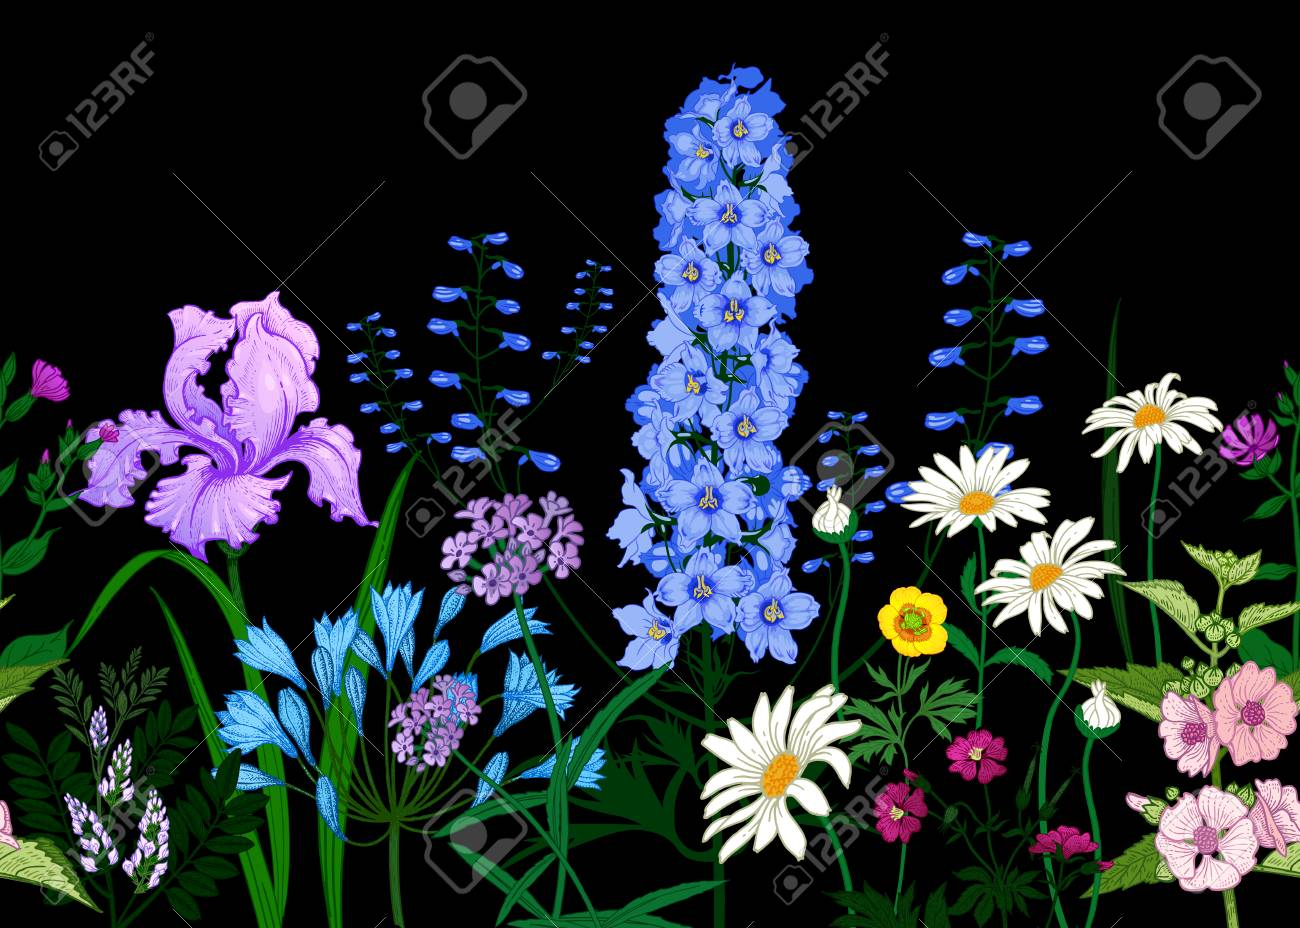 BorderÊwith Wild flowers. Seamless summer pattern with field flowers on black background. Floral background for printing wallpaper, paper, textiles, fabrics. Hand drawing sketch. Fashion illustration. - 126162365